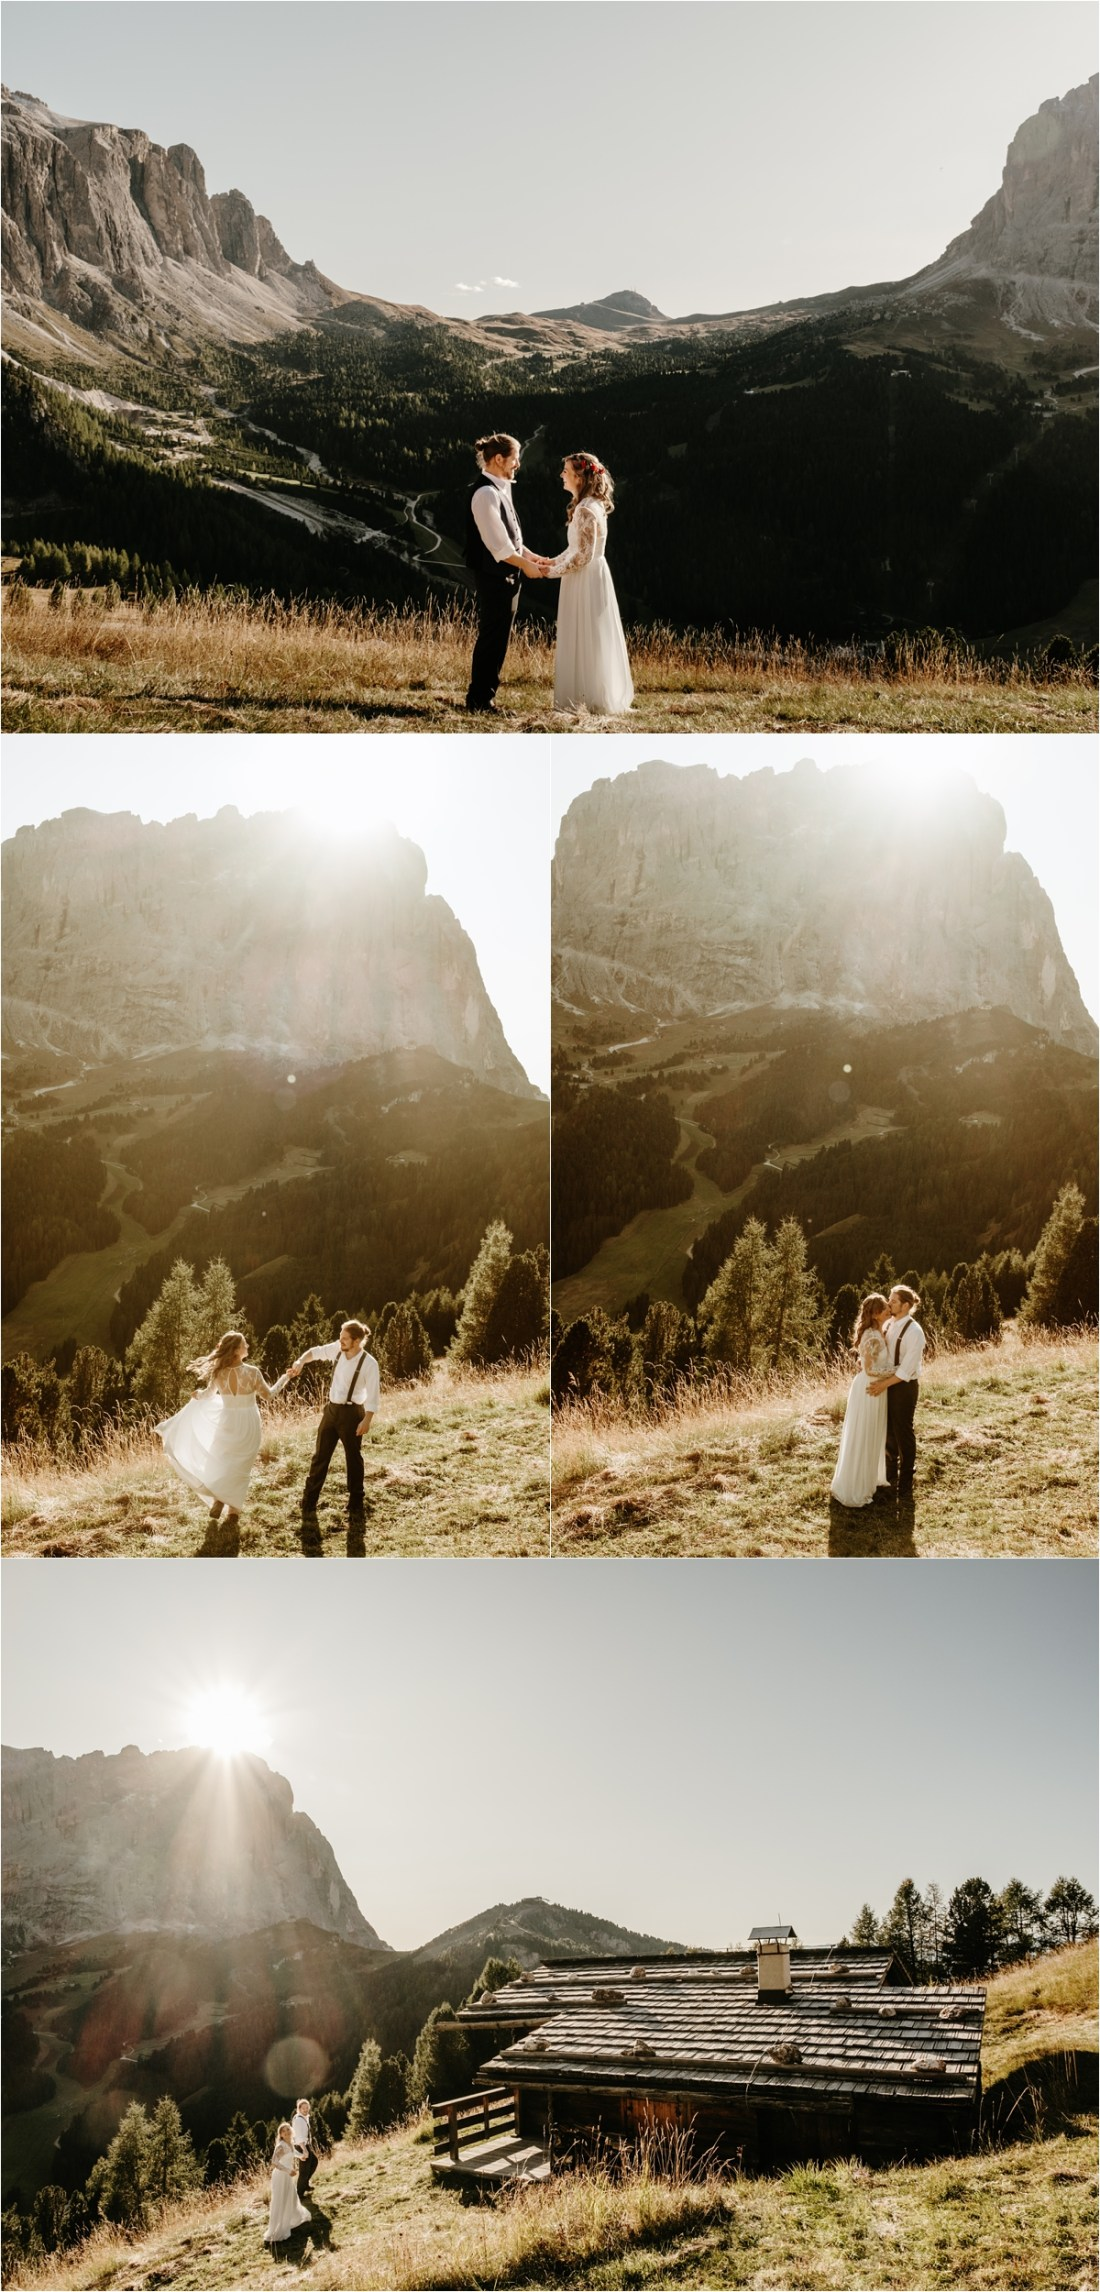 Bride and groom find a wooden mountain hut in the Dolomites. Photos by Wild Connections Photography